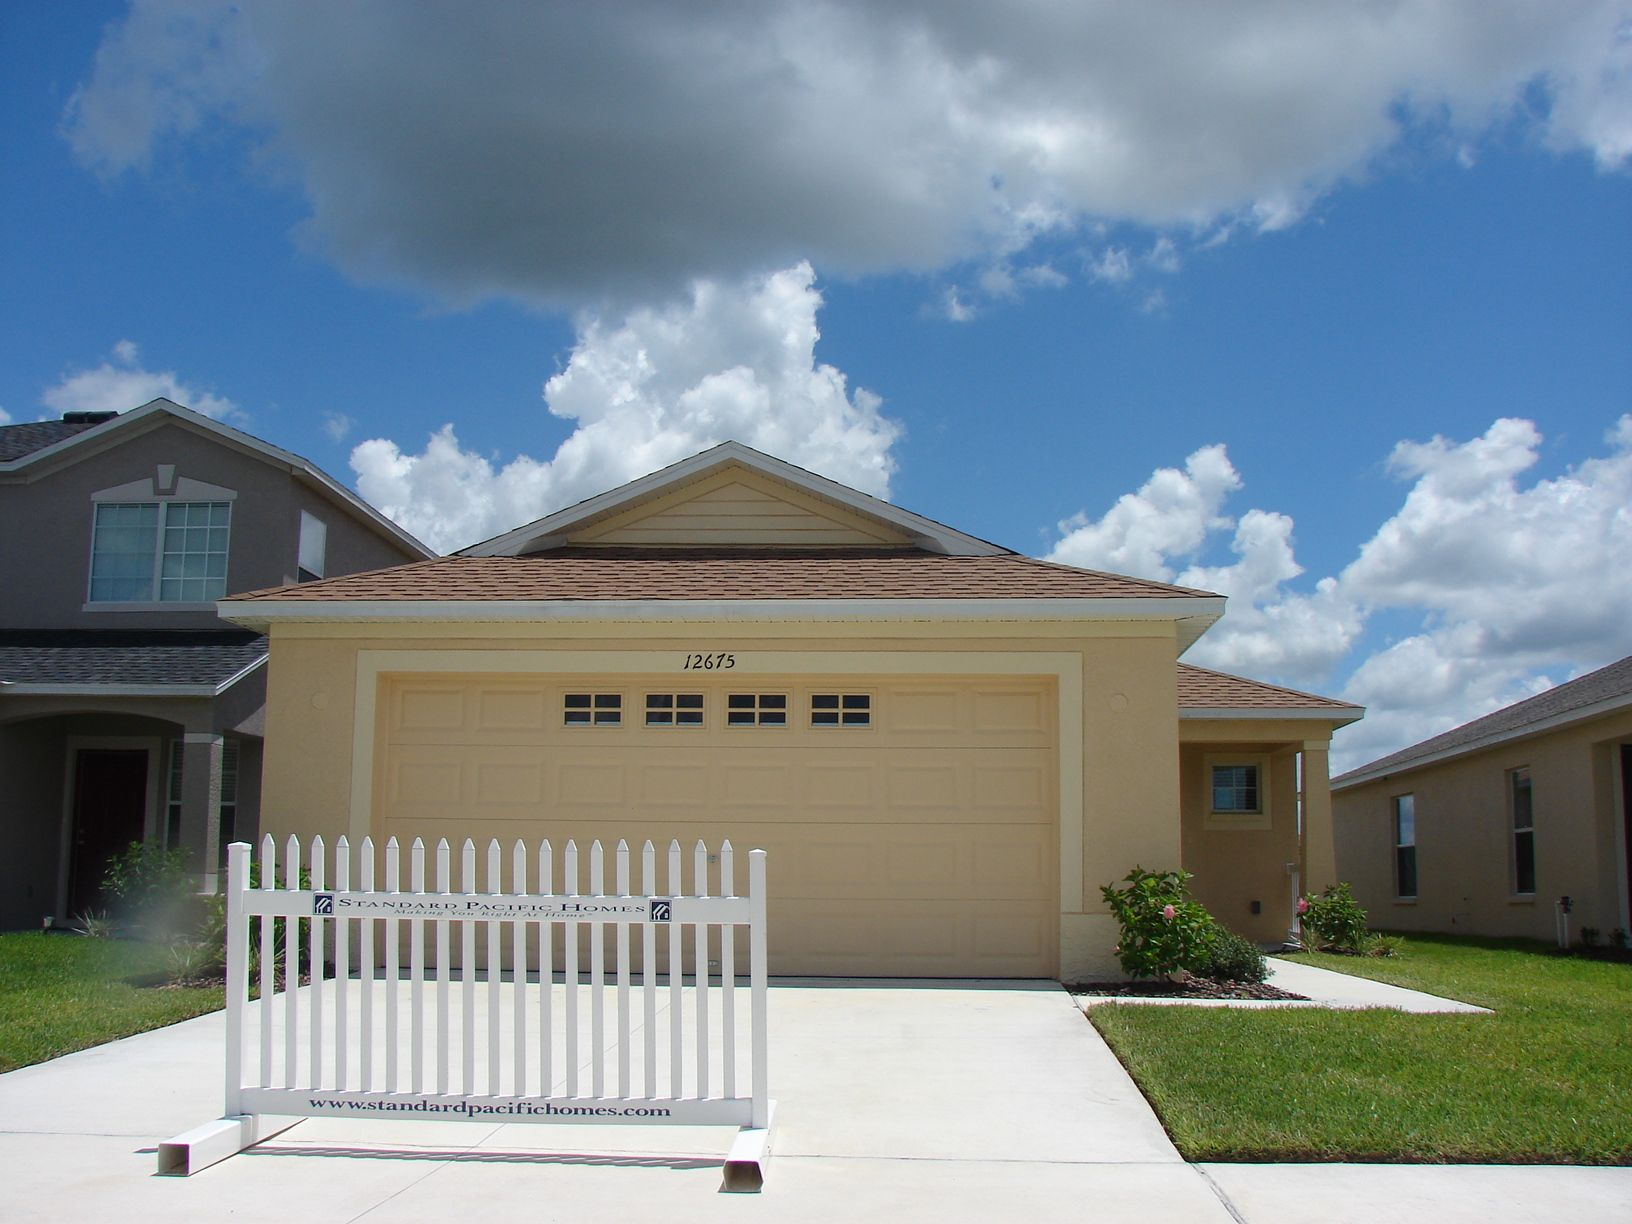 Panther Trace. BRAND NEW Standard Pacific Homes Santa Fe! Energy ...